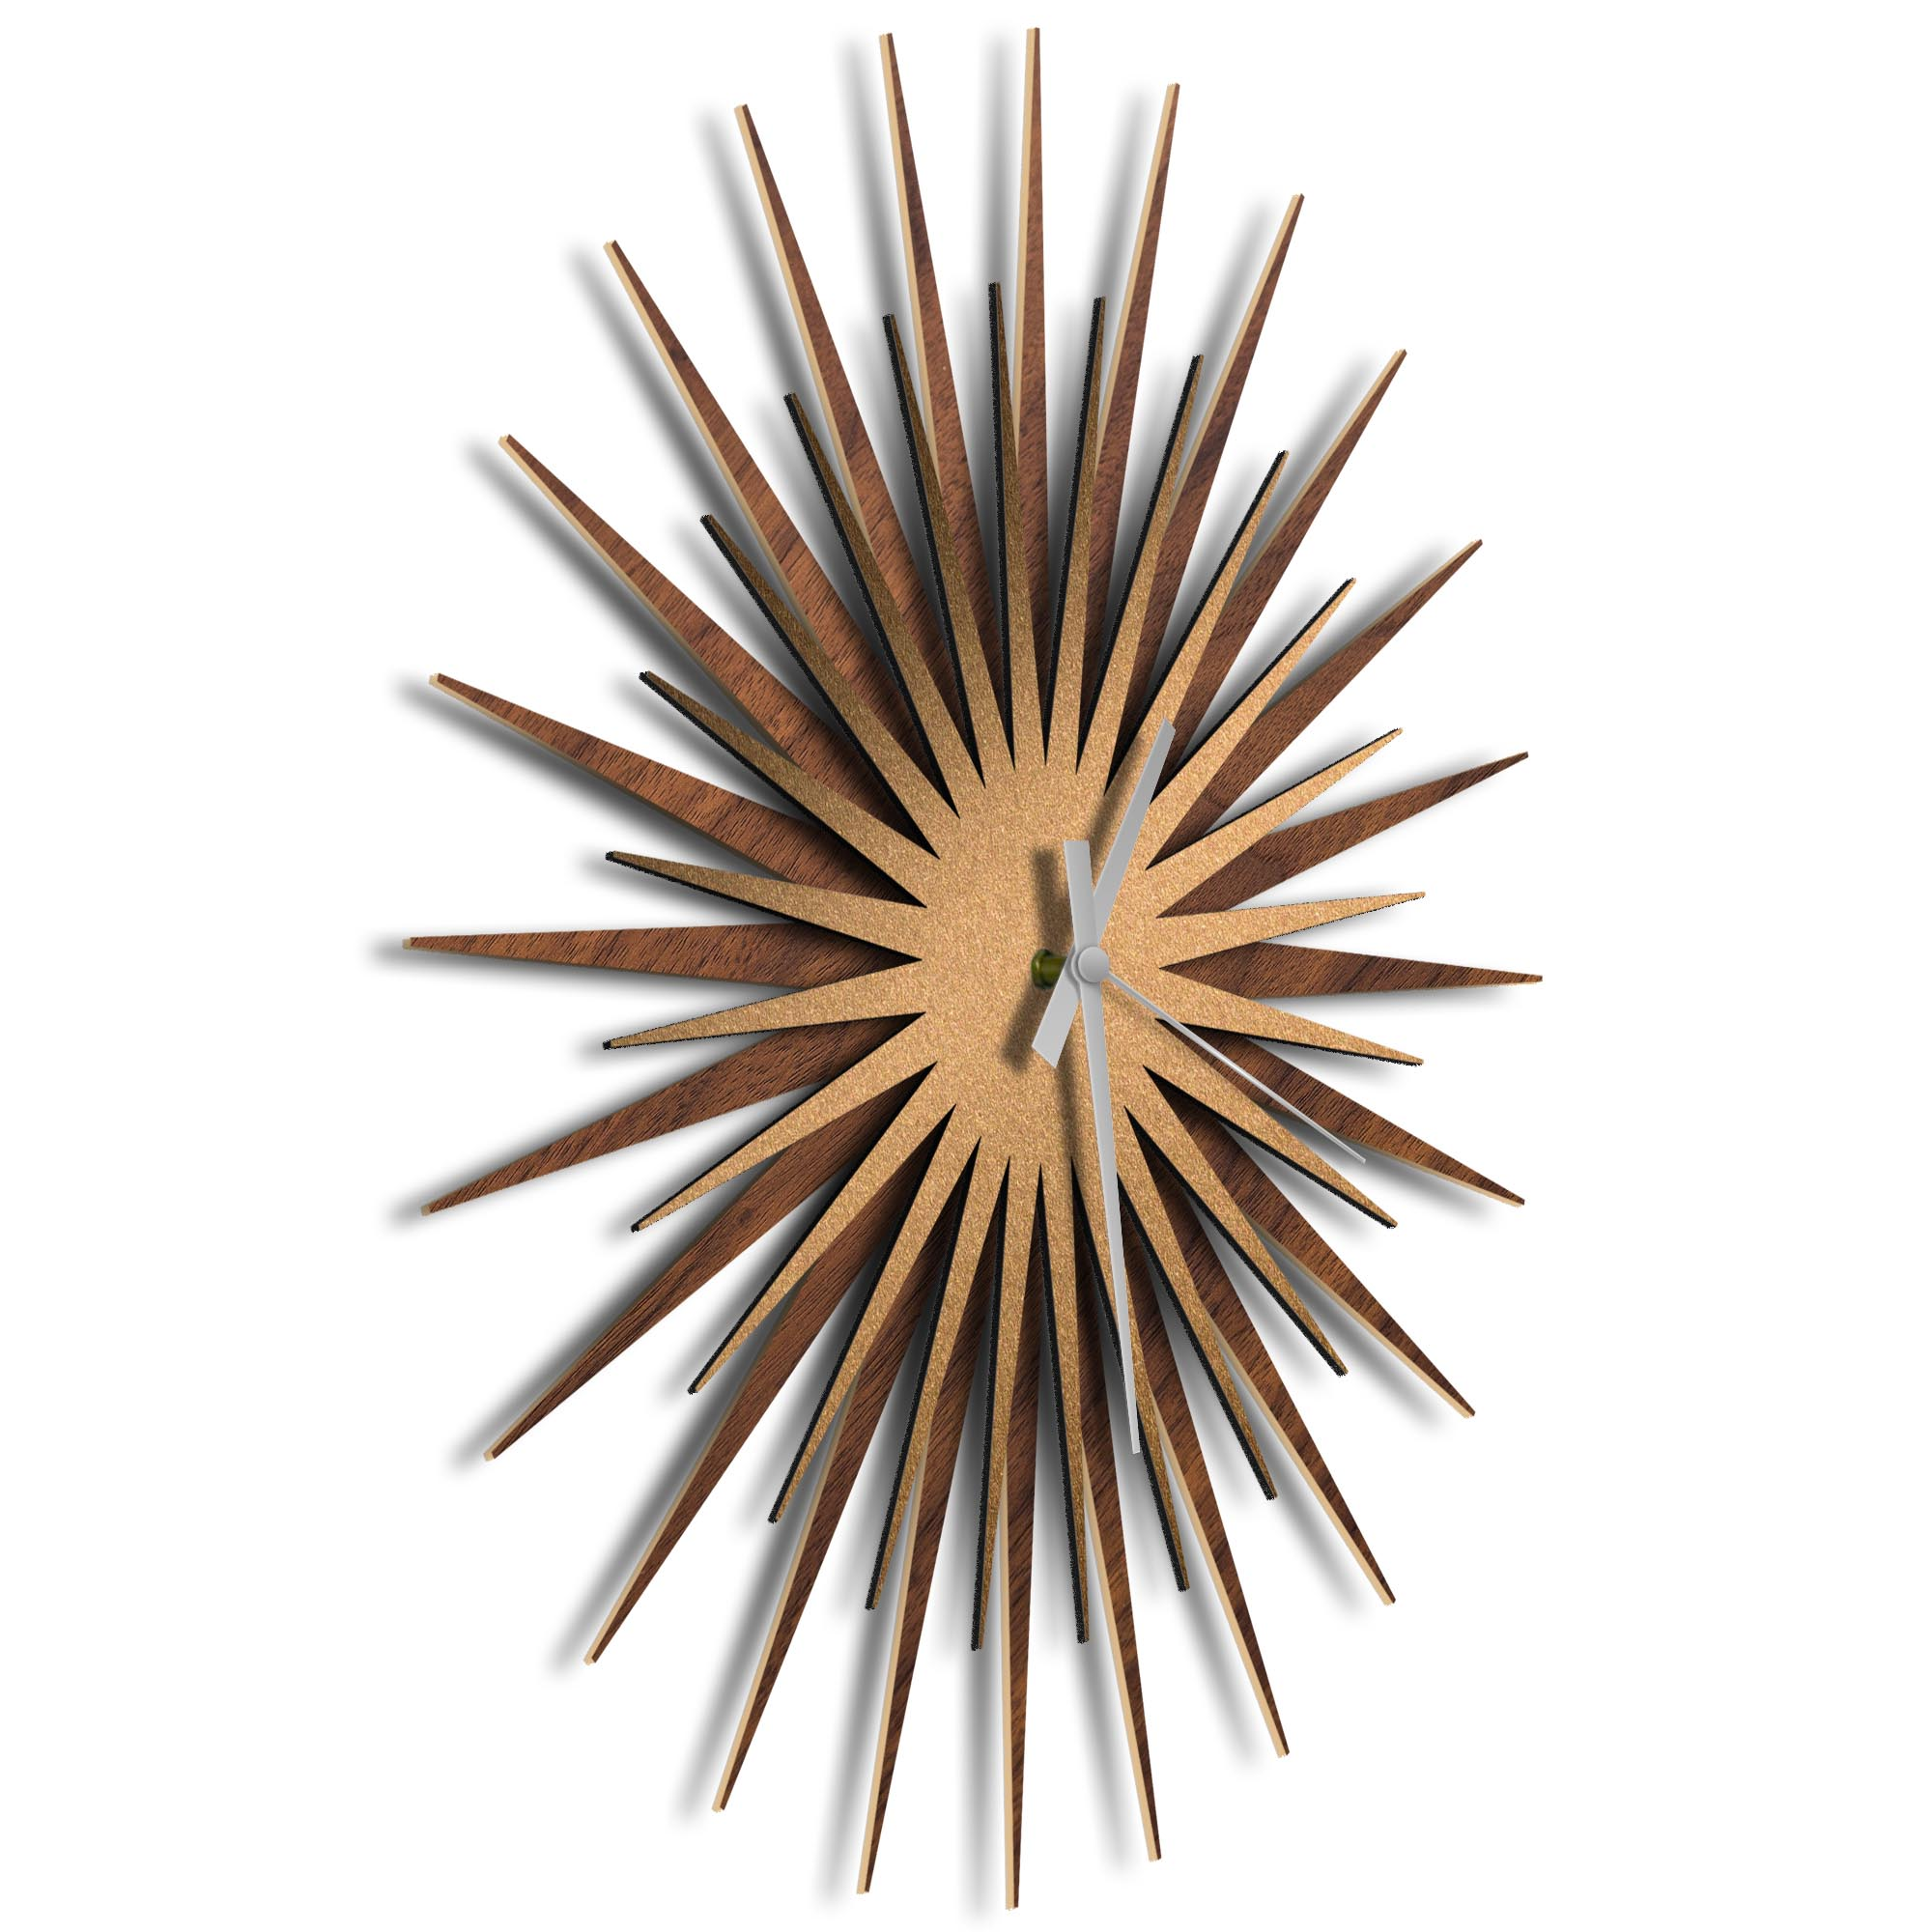 Atomic Era Clock Walnut Bronze Grey by Adam Schwoeppe - Mid-Century Modern Clock on Brushed Walnut Polymetal - Image 2